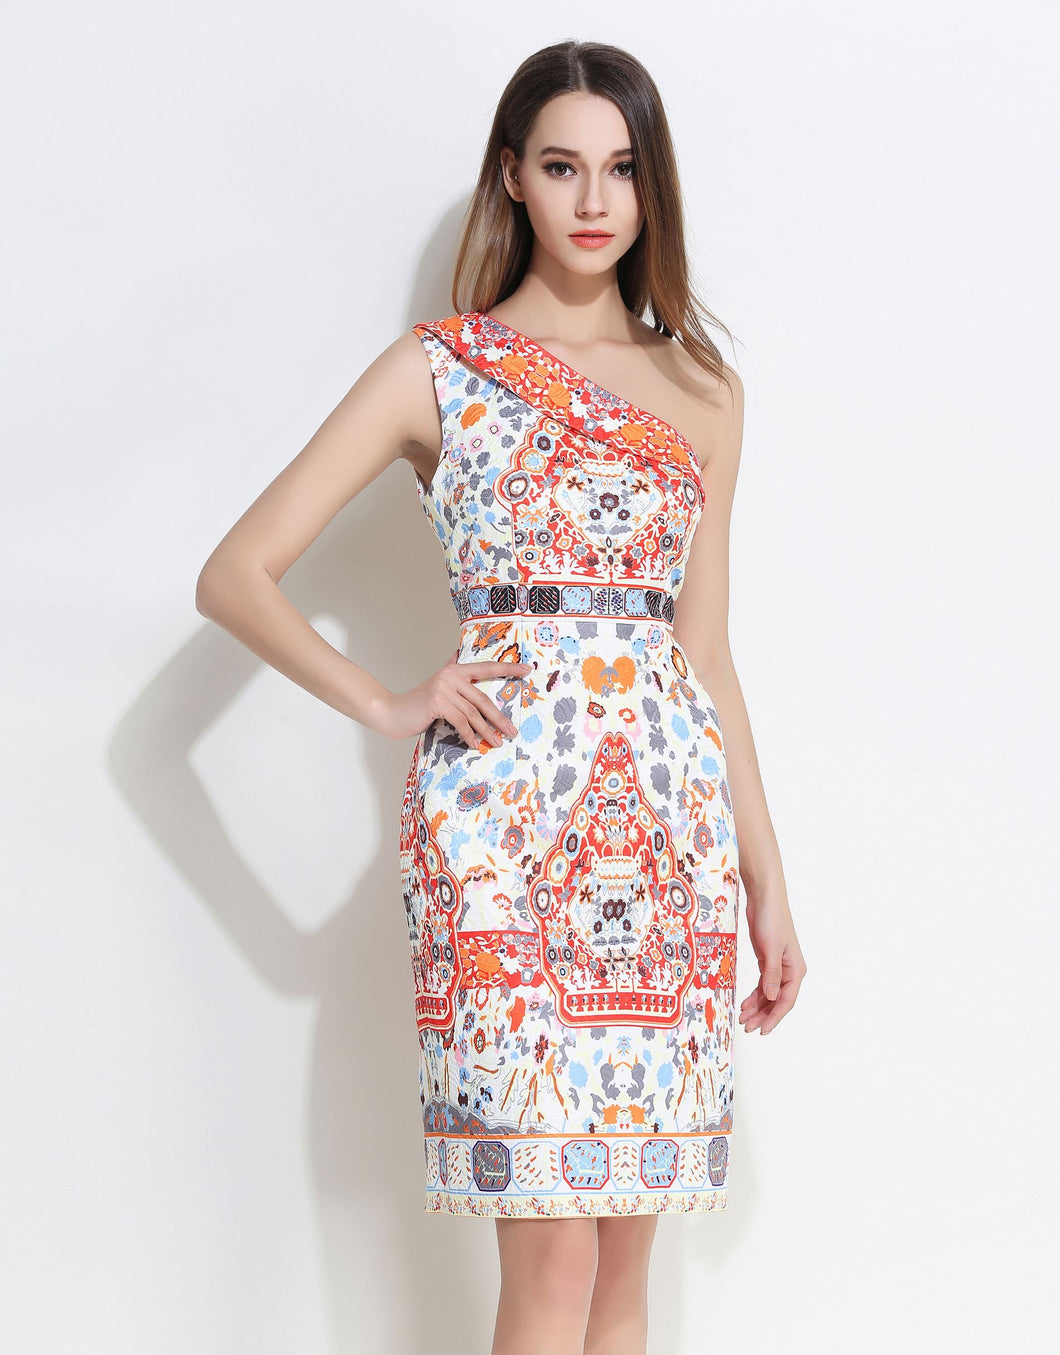 Comino Couture White Asymmetric Print Dress *WAS £150*